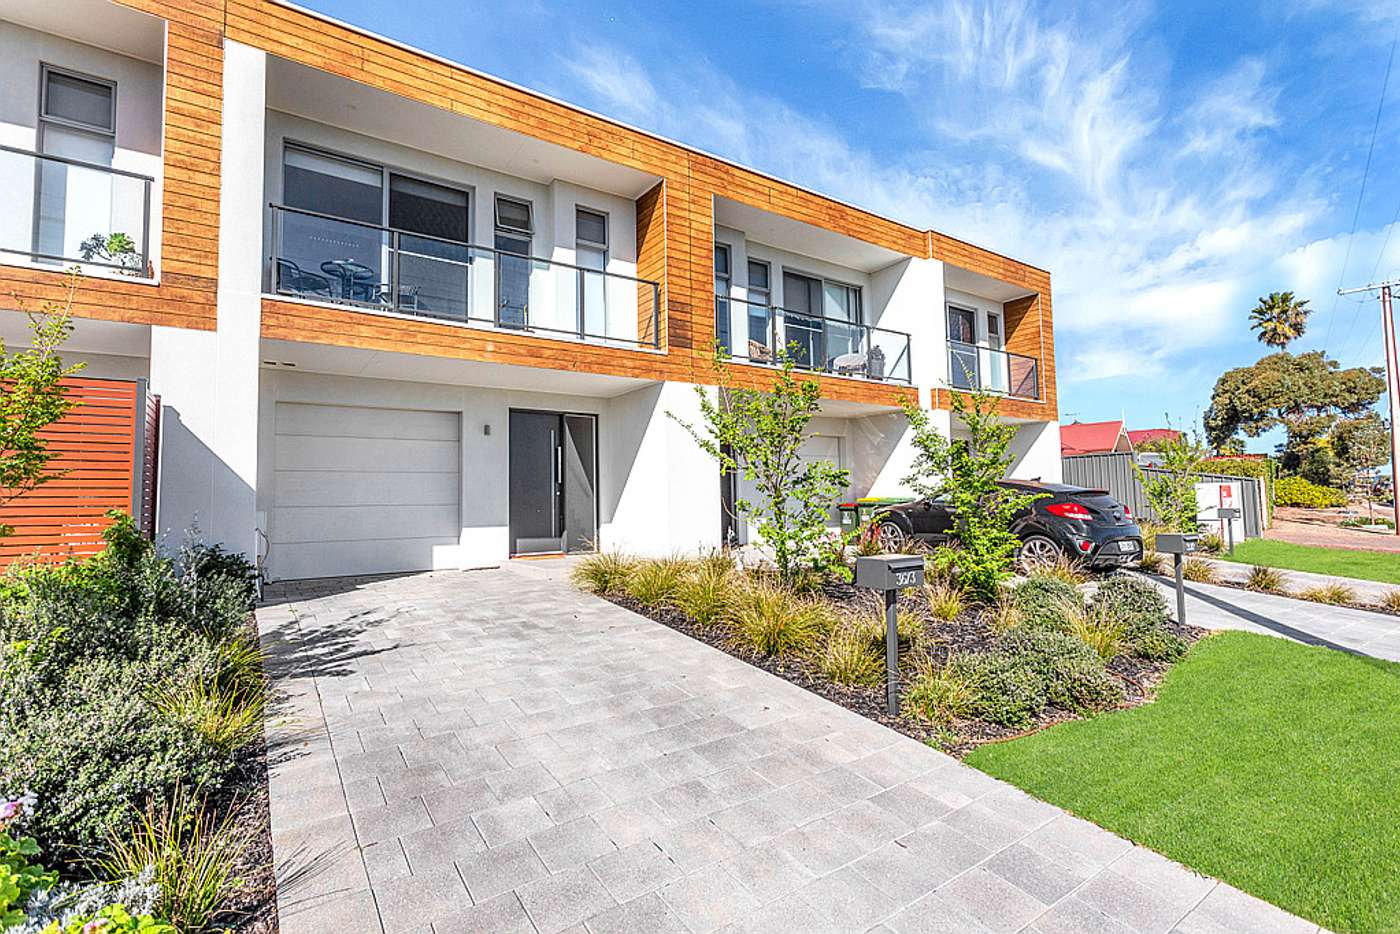 Main view of Homely house listing, 3/36 Clement Terrace, Christies Beach SA 5165